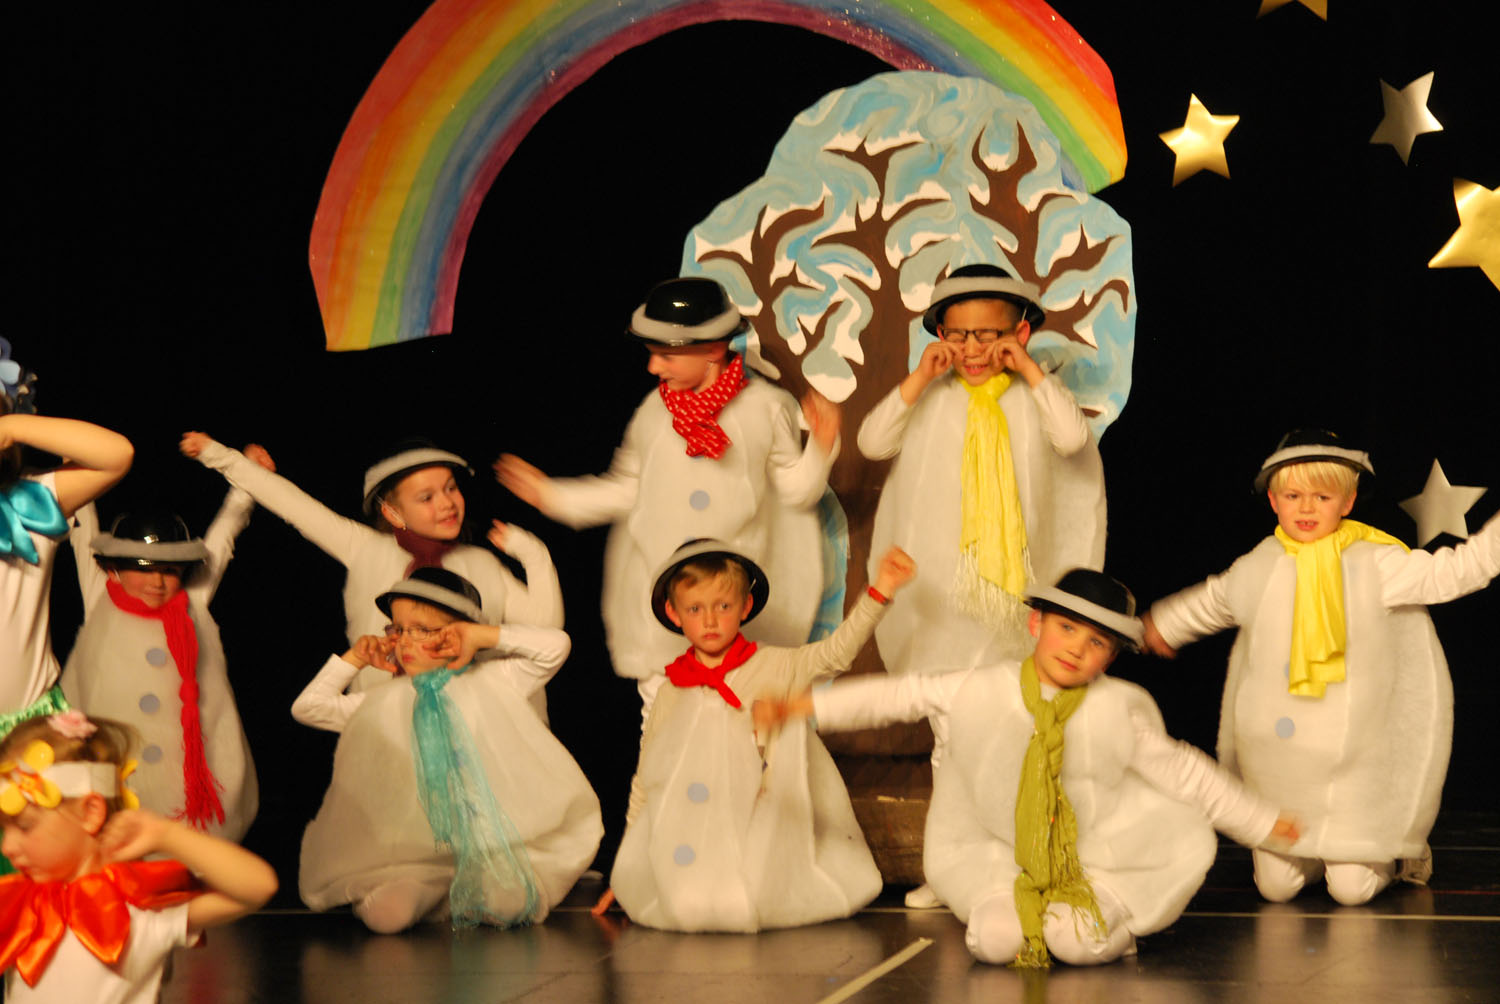 Spectacle Maternelle 2013